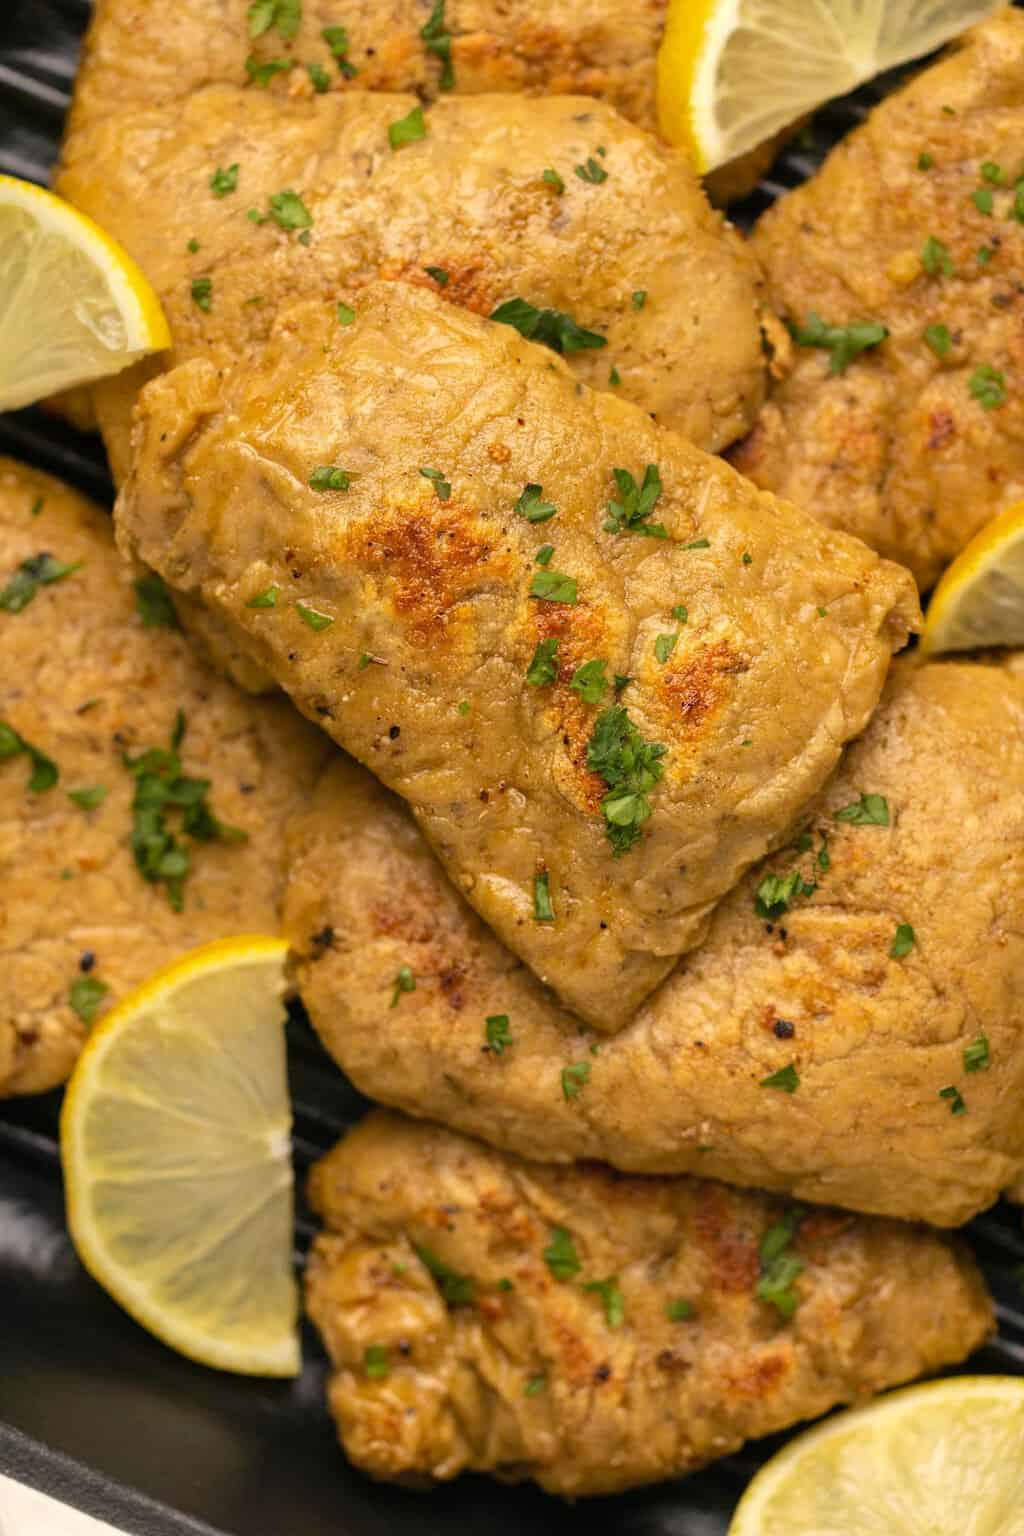 Vegan chicken fillets topped with chopped parsley and lemon slices.